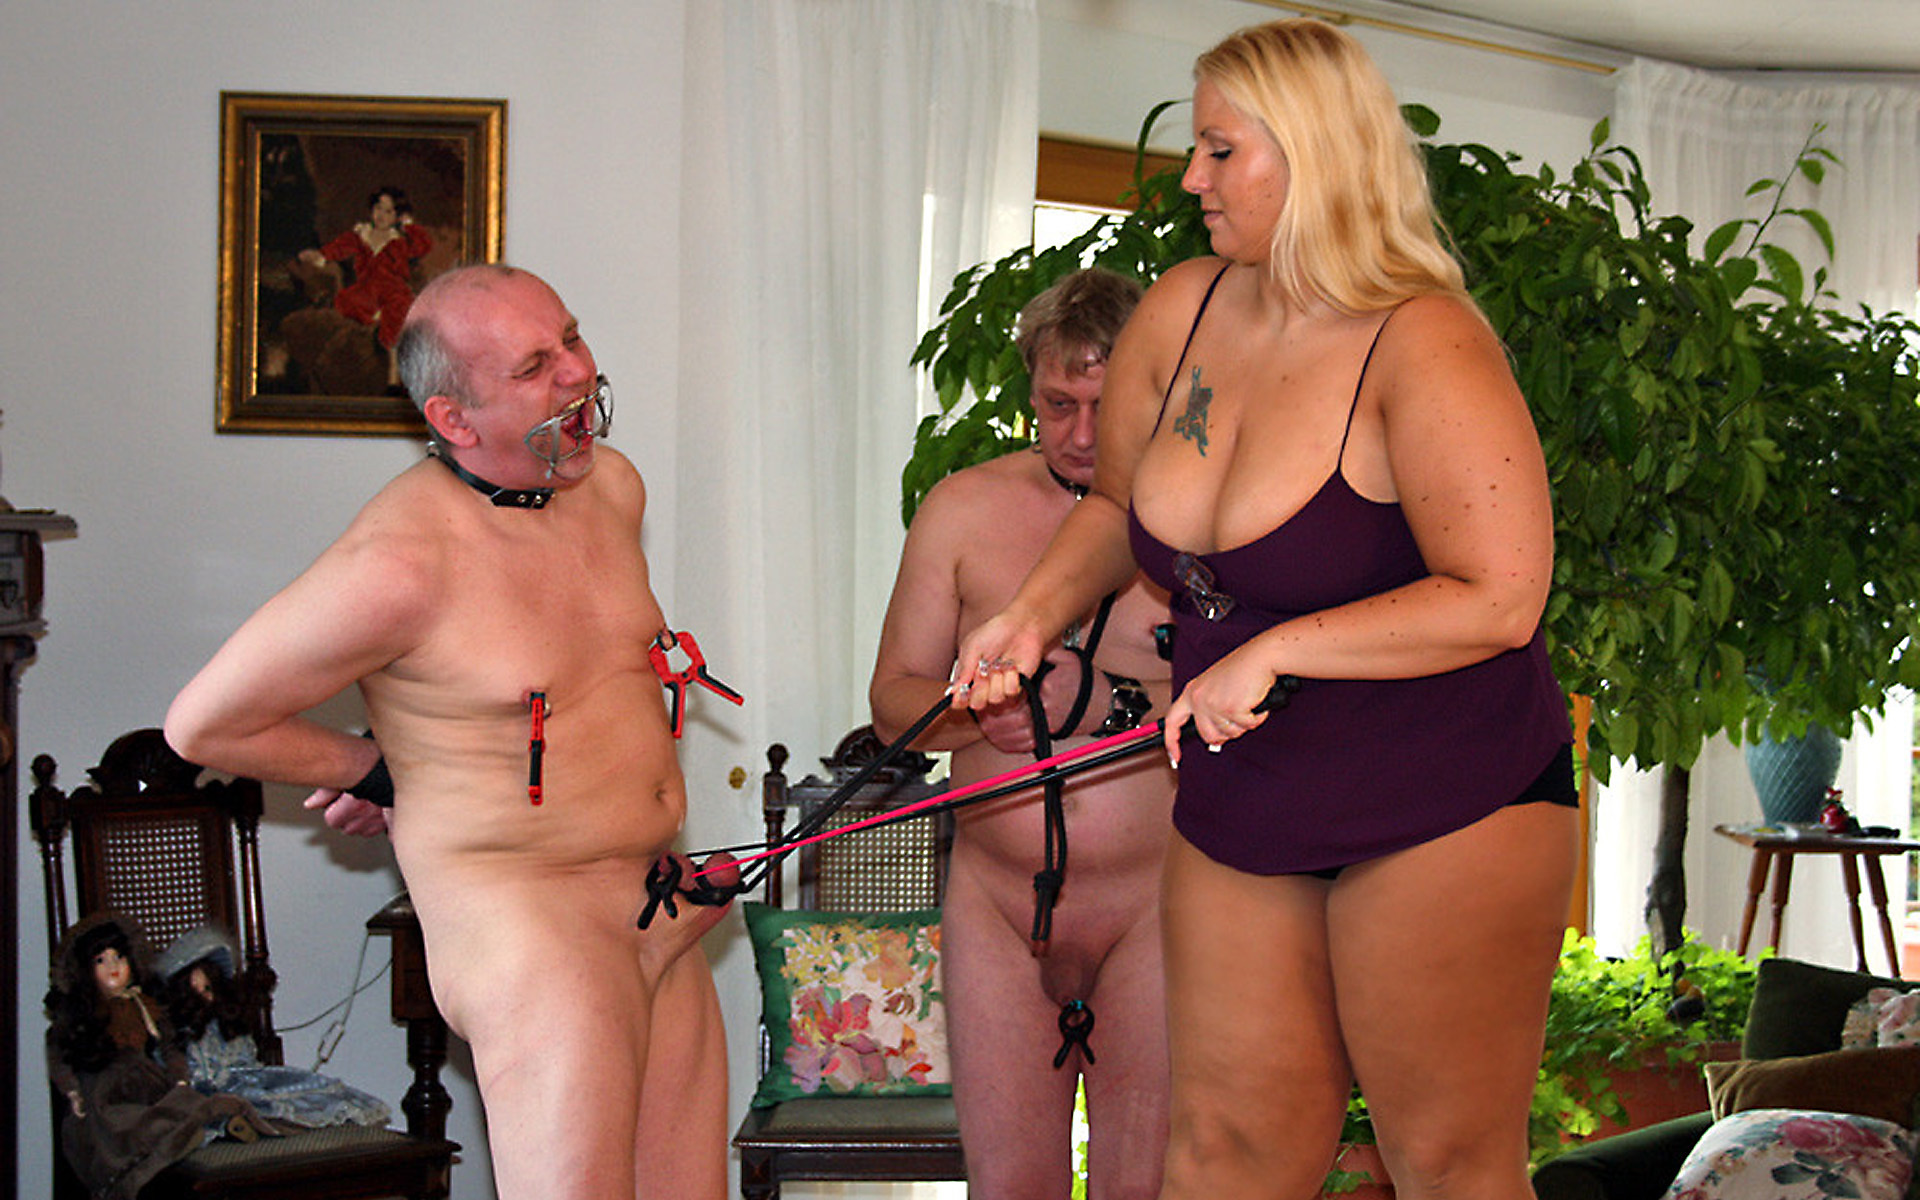 bbw femdom - cock and ball torture and femdom   motherless ™